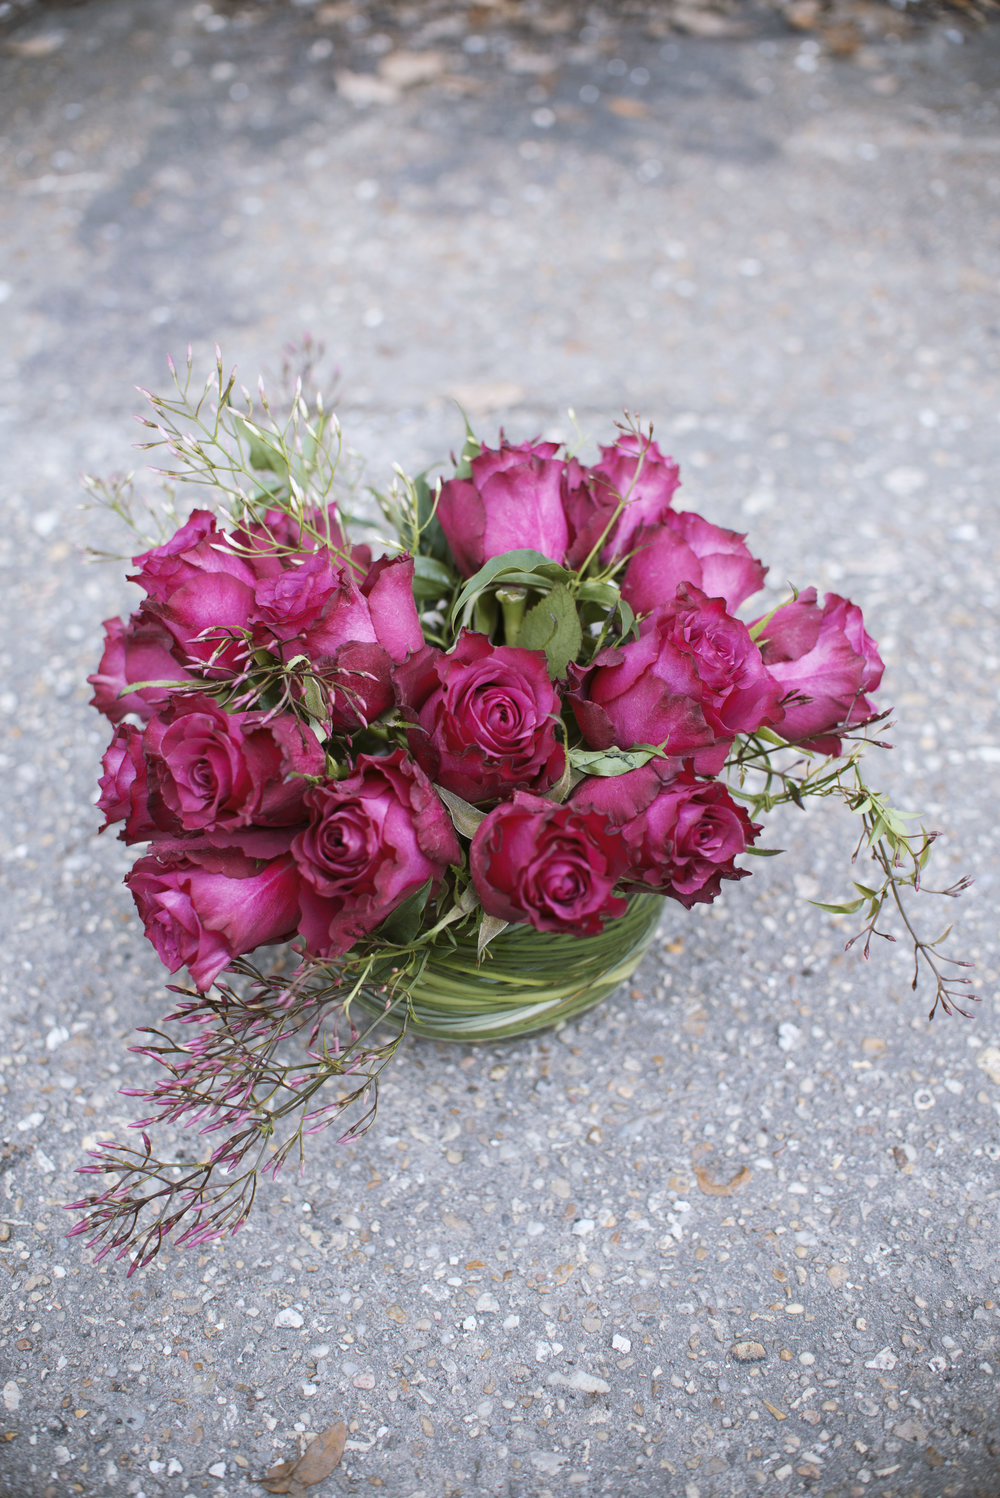 dozens of roses mitchs flowers new orleans florist.jpg